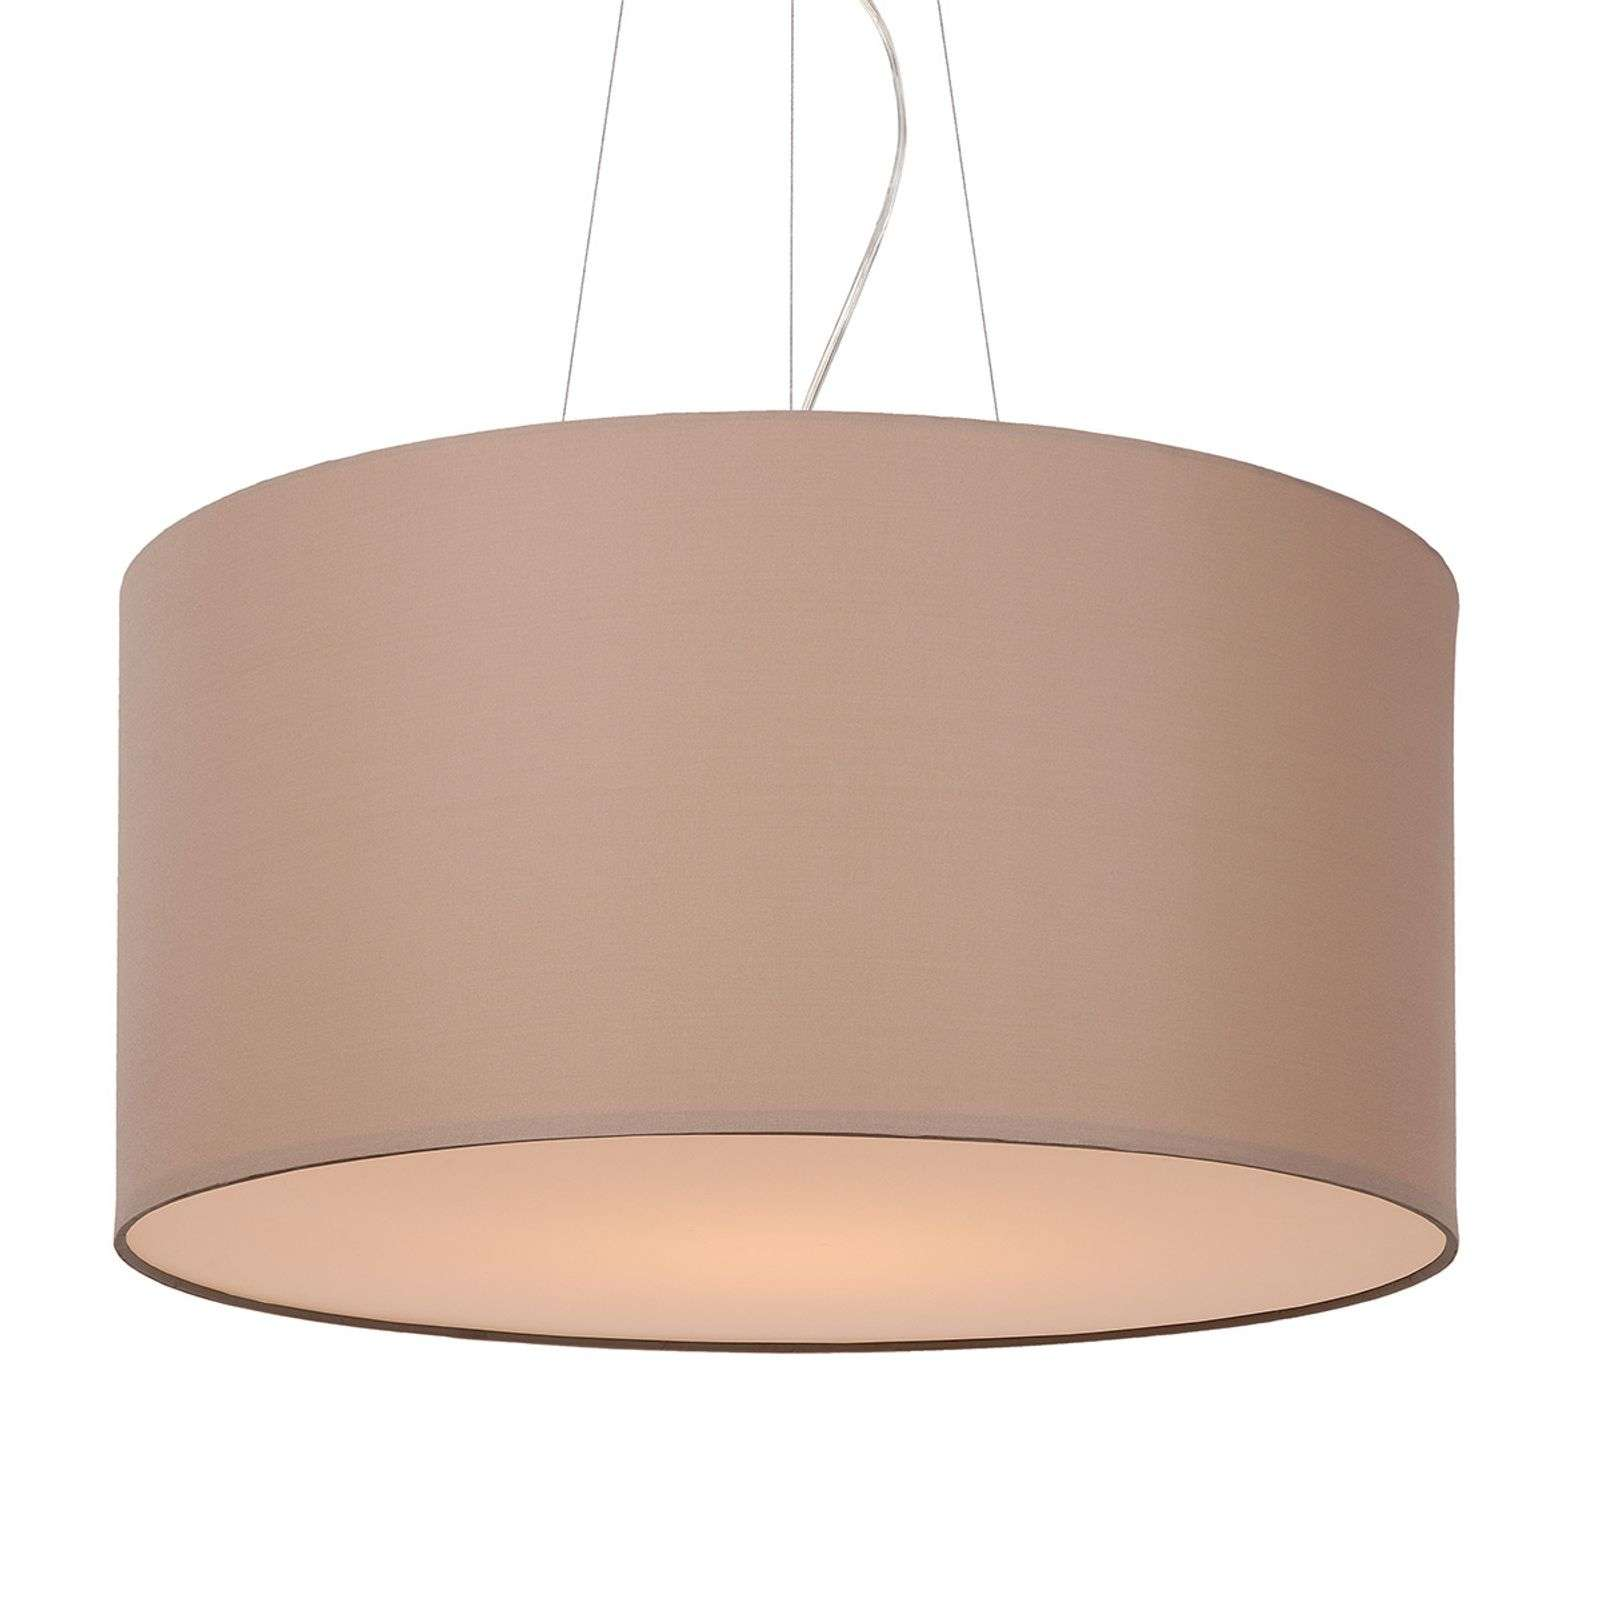 Suspension universelle CORAL 60 cm taupe